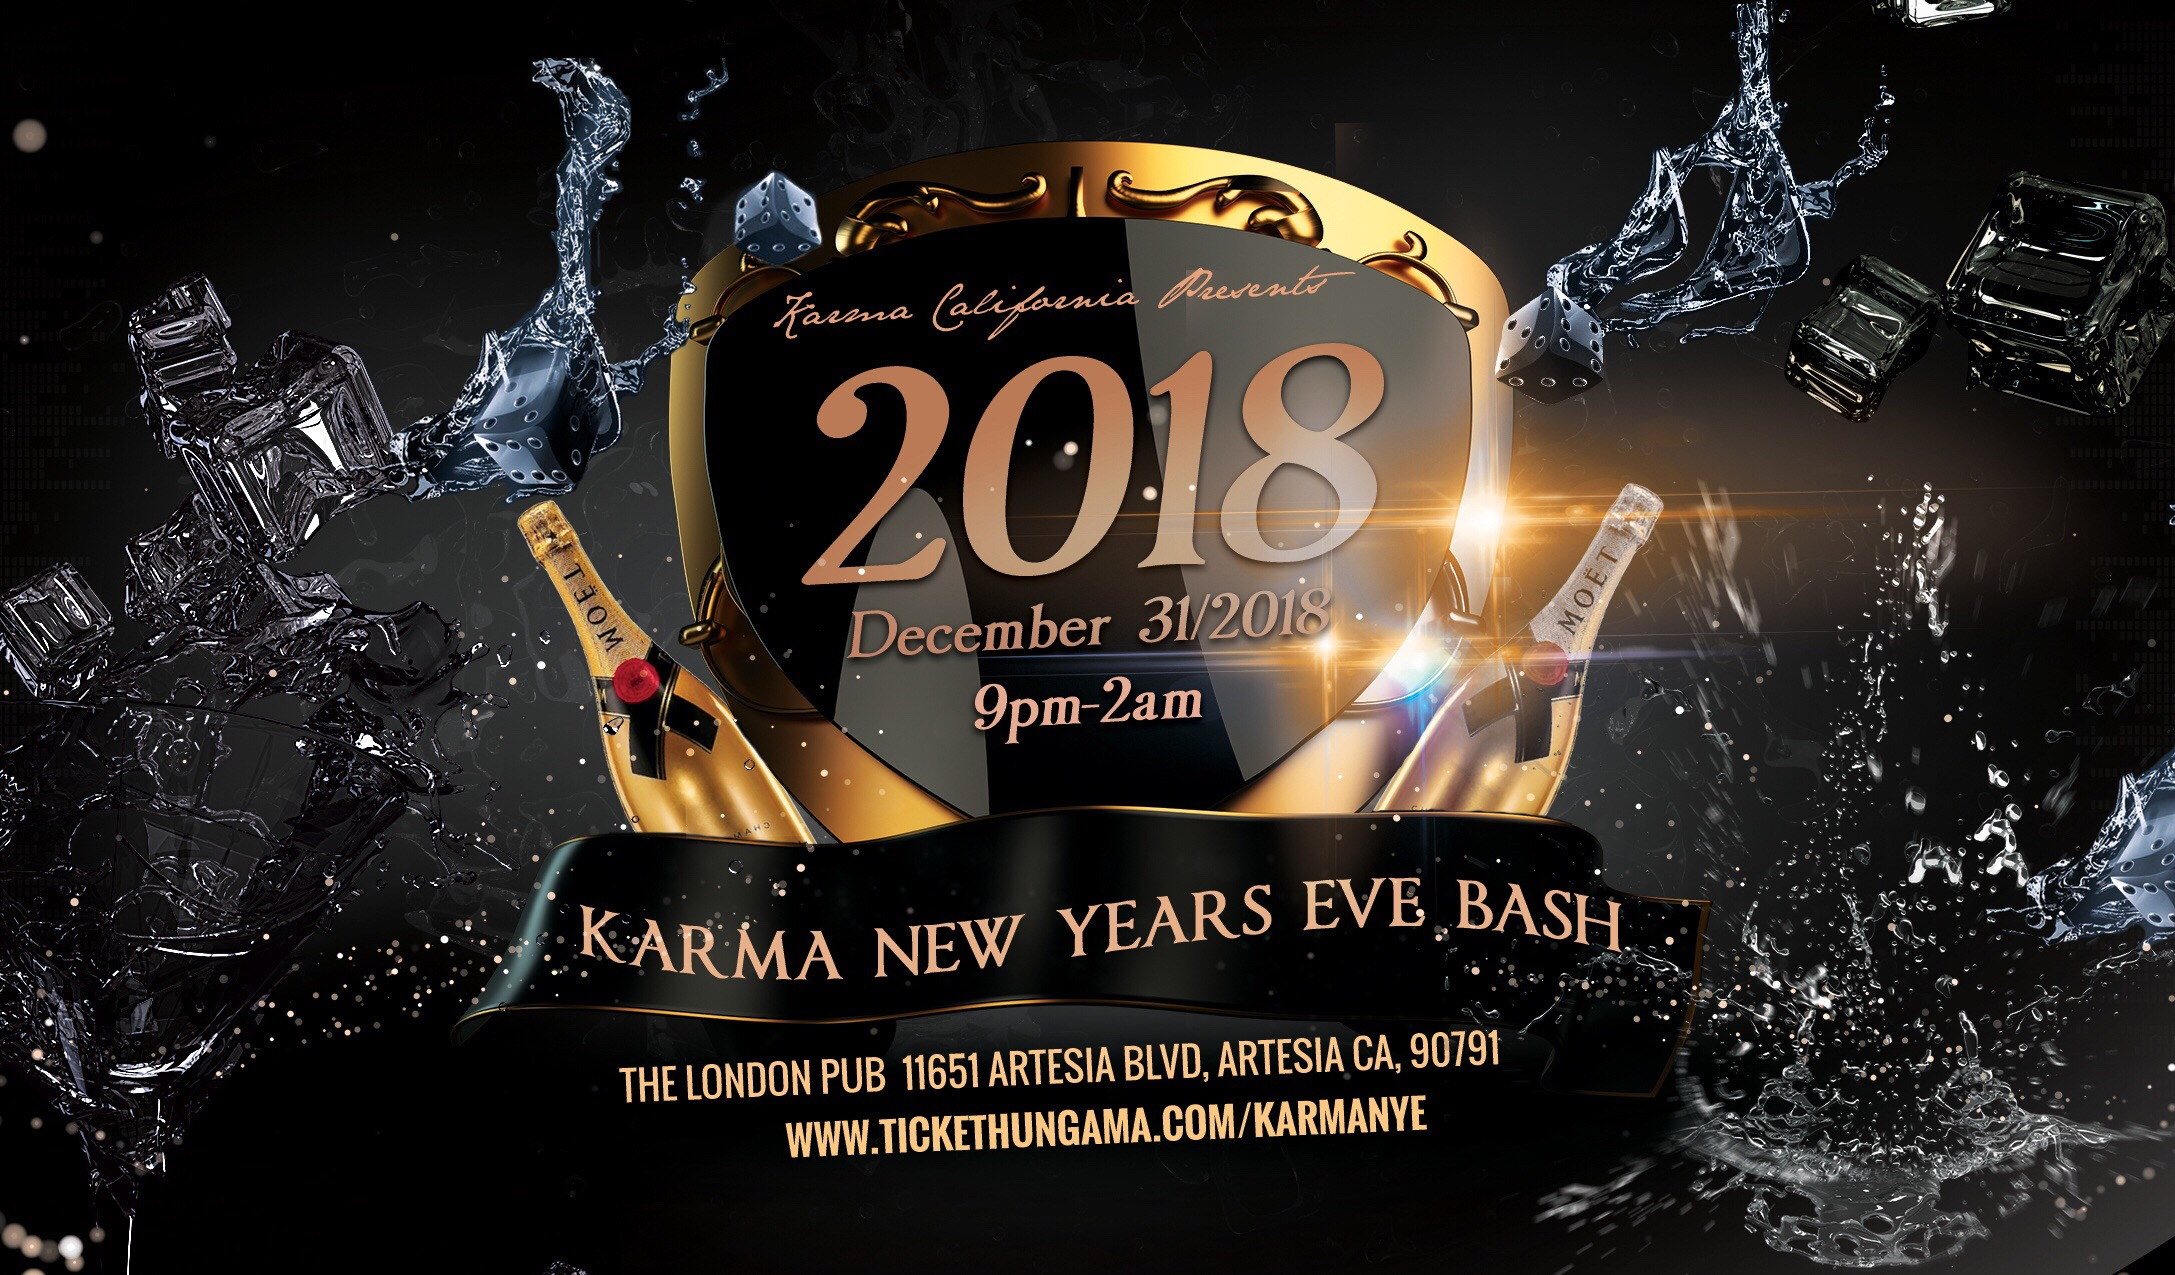 KARMA NEW YEAR'S EVE 2018